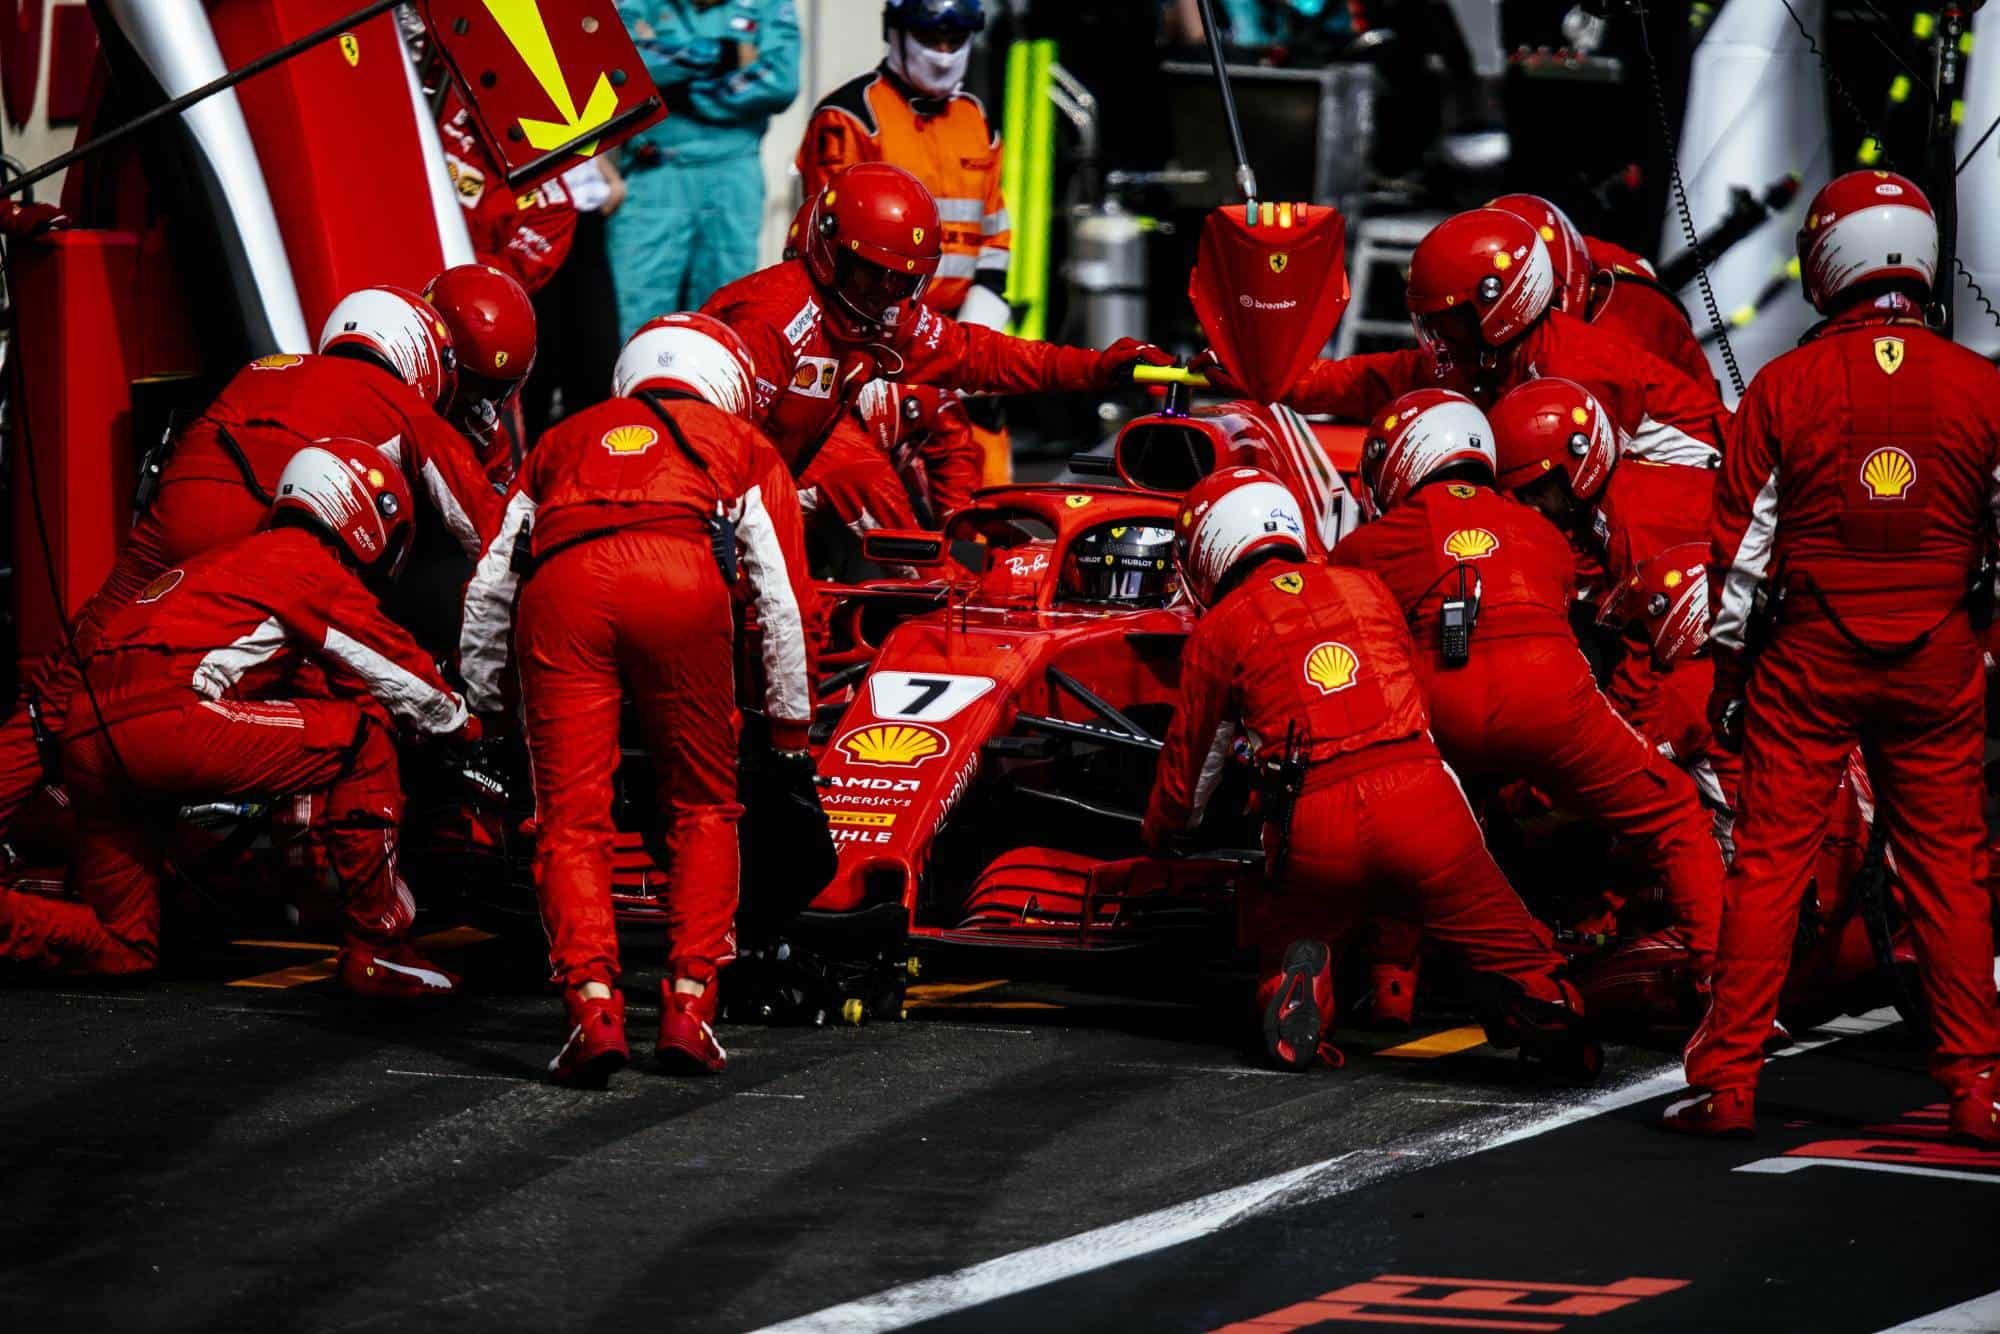 Raikkonen Ferrari SF71H French GP F1 2018 pitstop Photo Ferrari